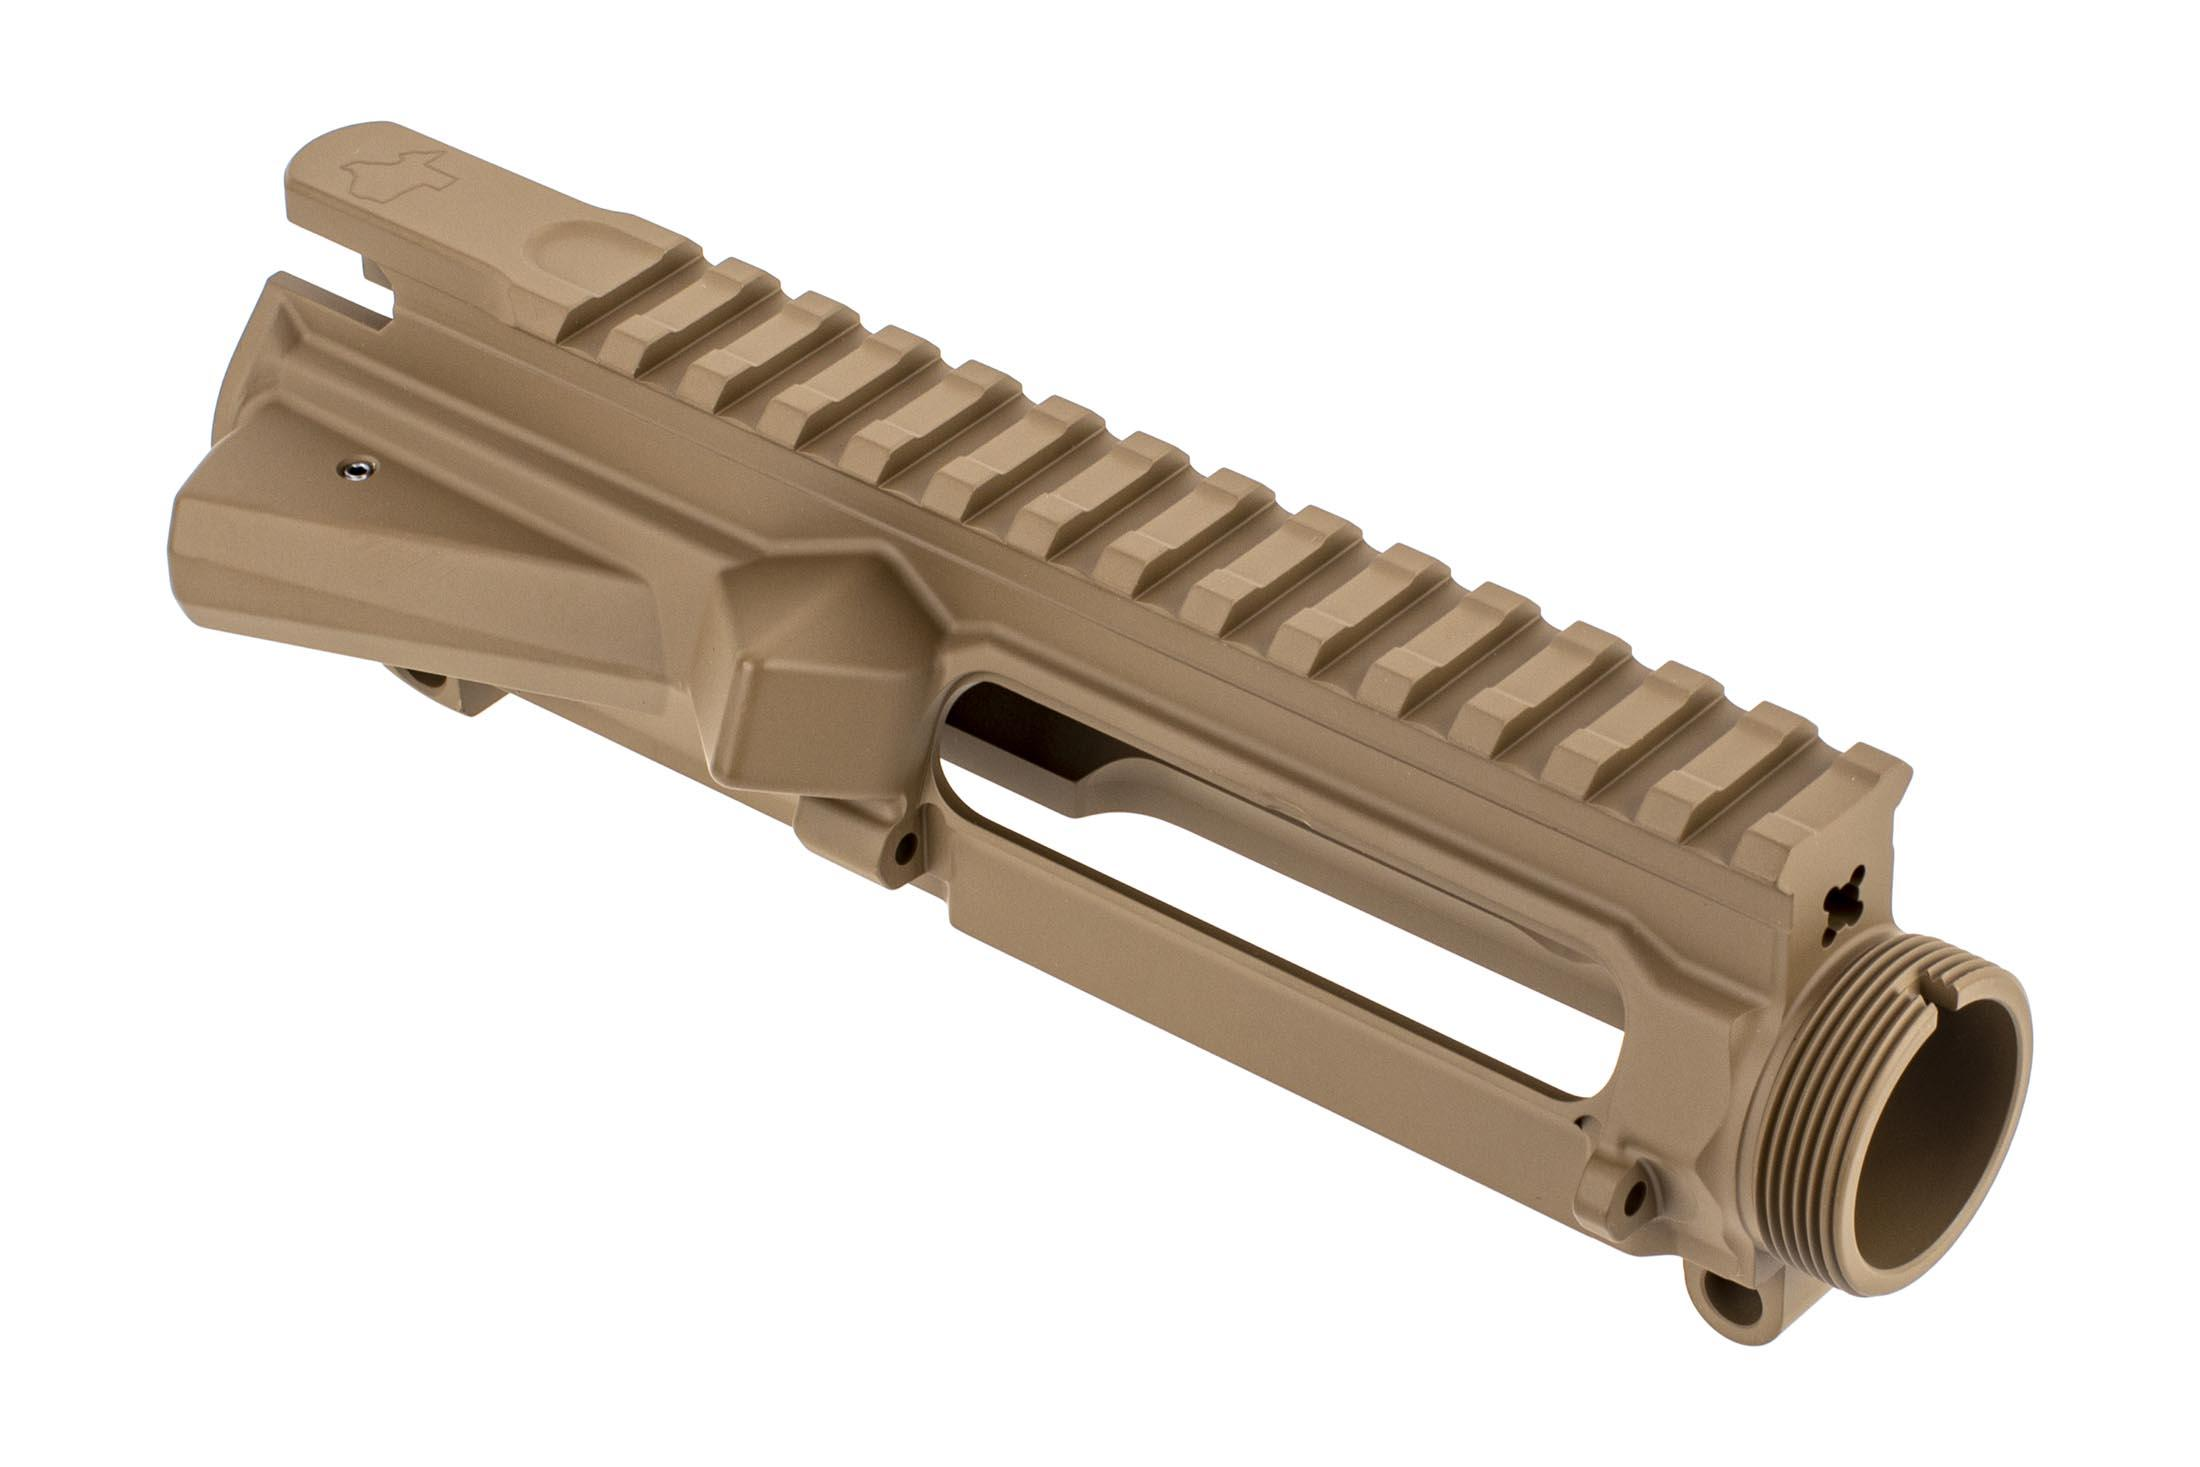 Aero Precision Threaded M4E1 stripped AR15 upper receiver with Flat Dark Earth finish and Texas Edition engraving